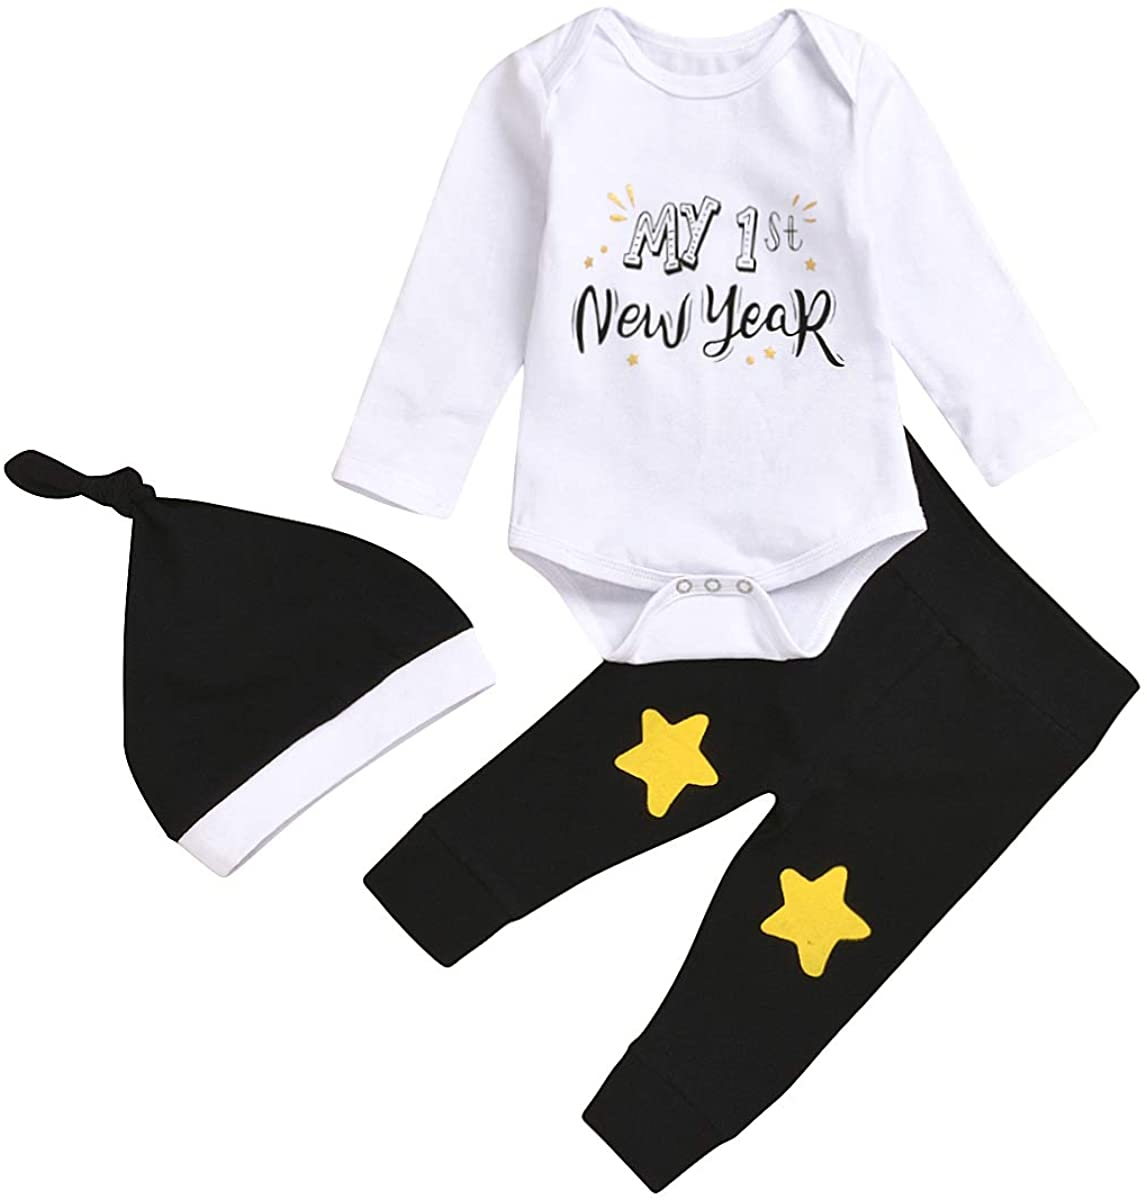 2020 New Years Baby Outfits Newborn Baby Boy Girl My First New Years Romper Bodysuit+Cute Star Pants+ Hats 3PCS Clothes Set